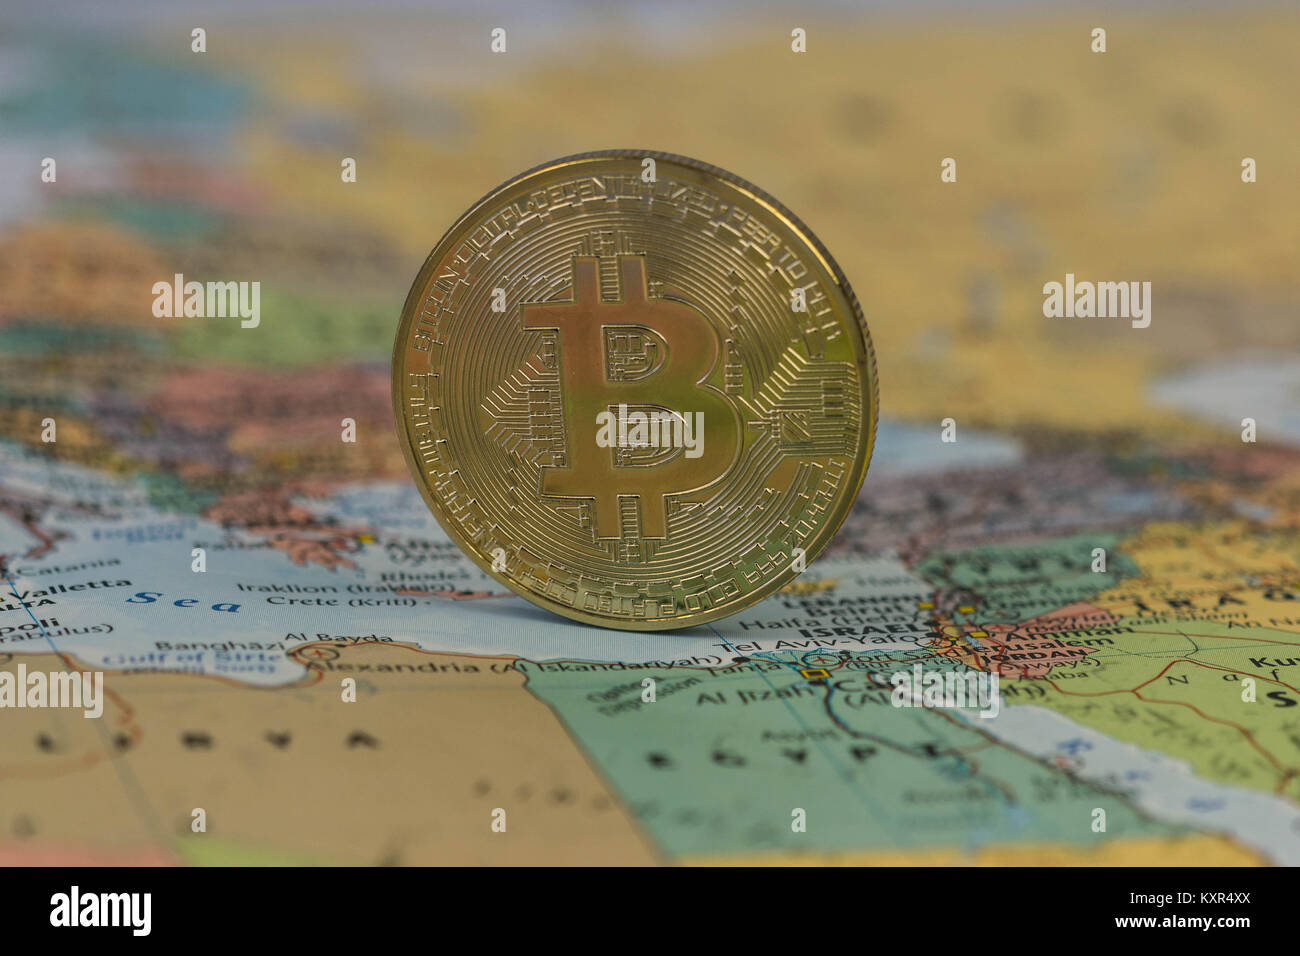 Golden Bitcoin Coin close up with blurred background of the Middle East. - Stock Image